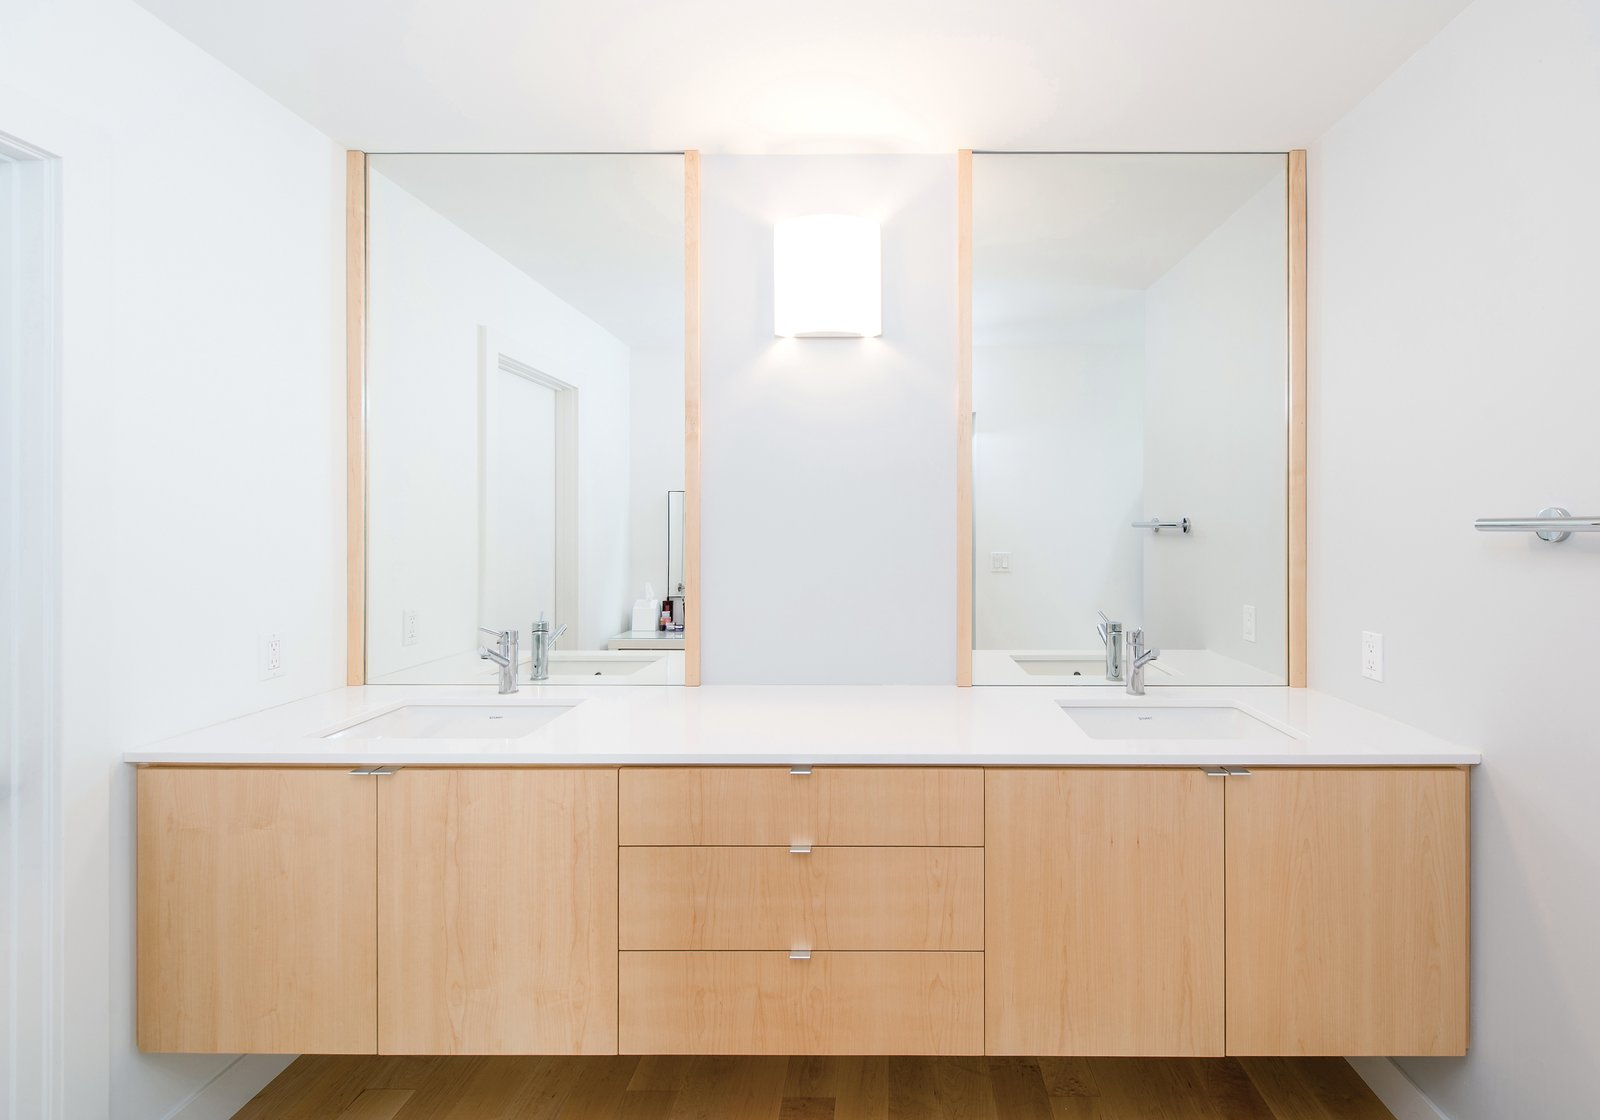 Floating maple cabinetry at the master bath vanity provides for material continuity throughout the home's minimalist interior. Tagged: Bath Room, Engineered Quartz Counter, Wall Lighting, Undermount Sink, and Light Hardwood Floor.  Villa Park Modern by MYD studio, inc.